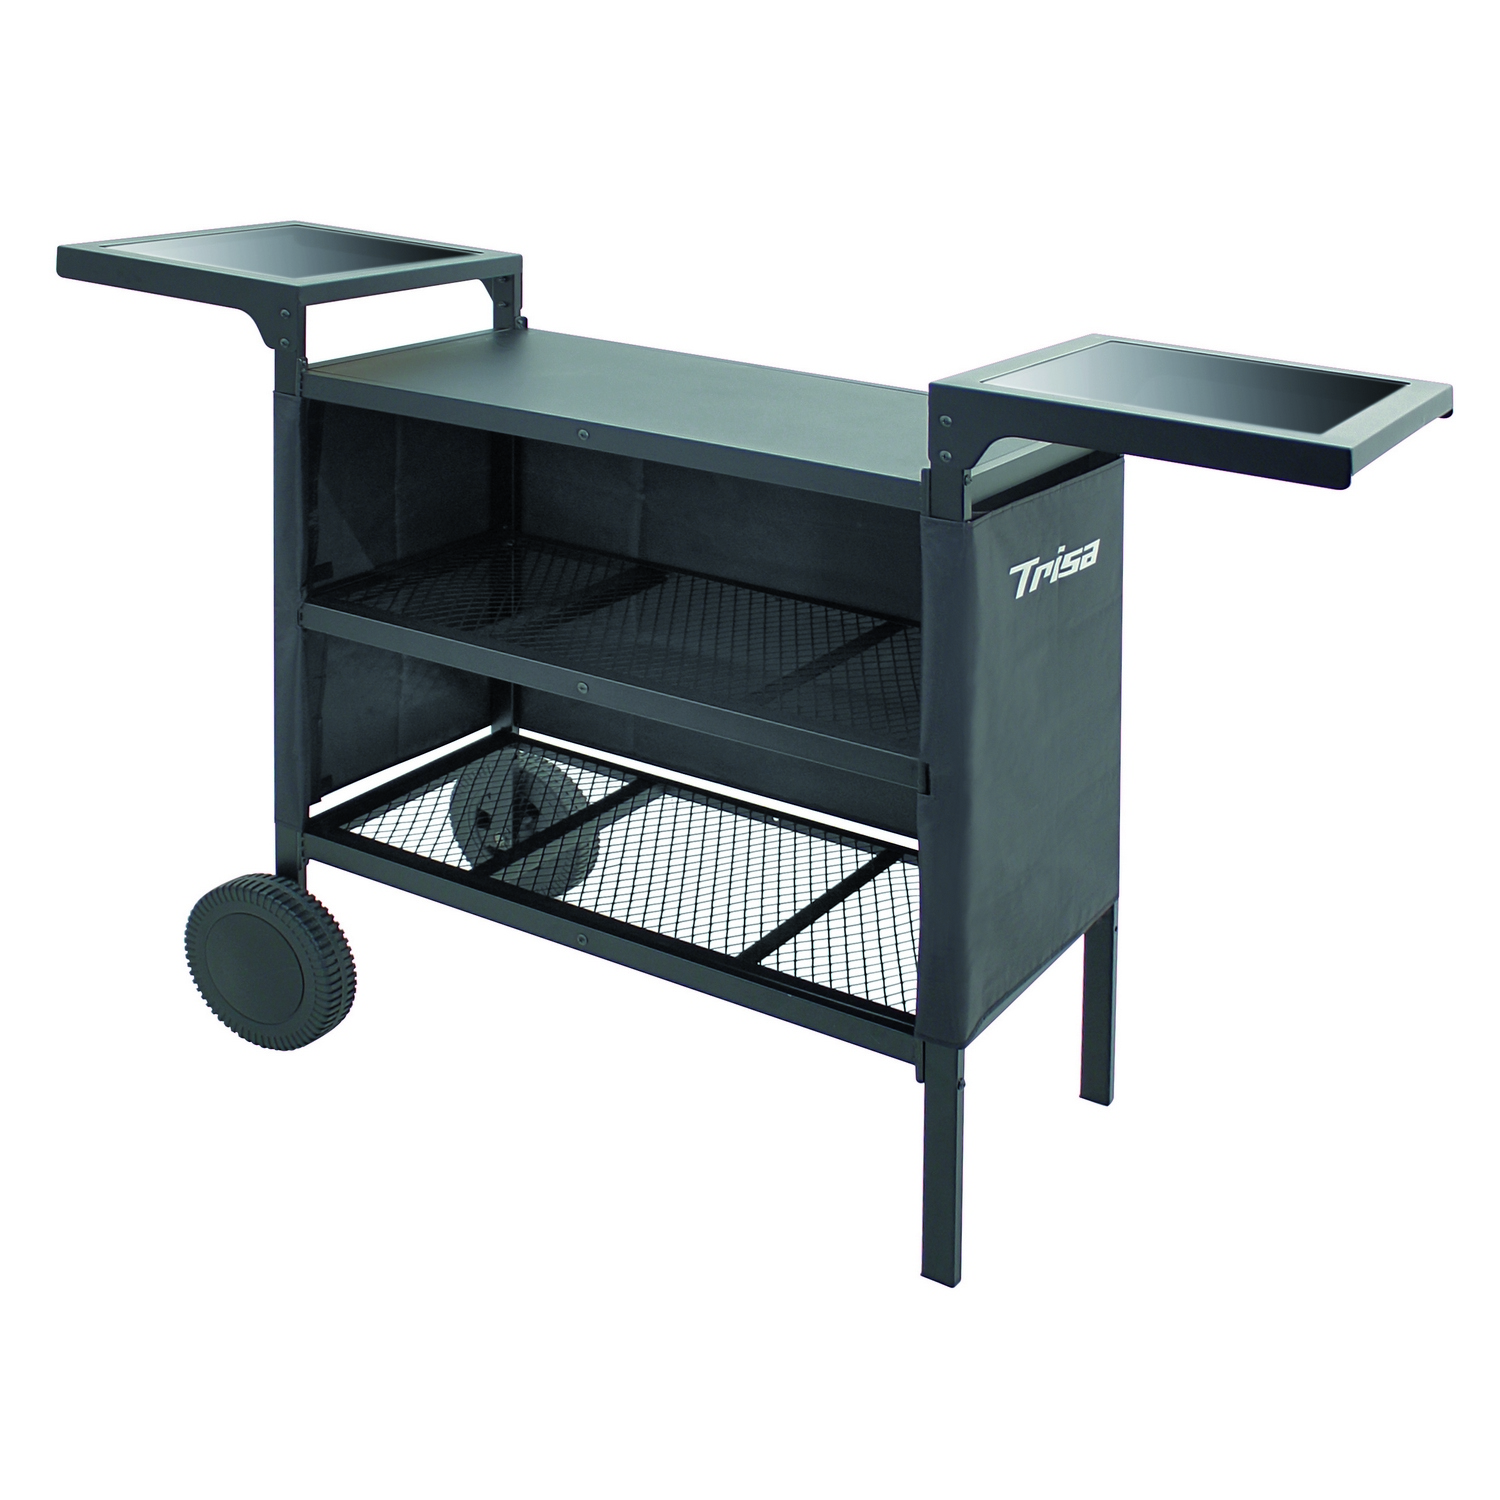 Trisa 7567 Planche Grill Trolley